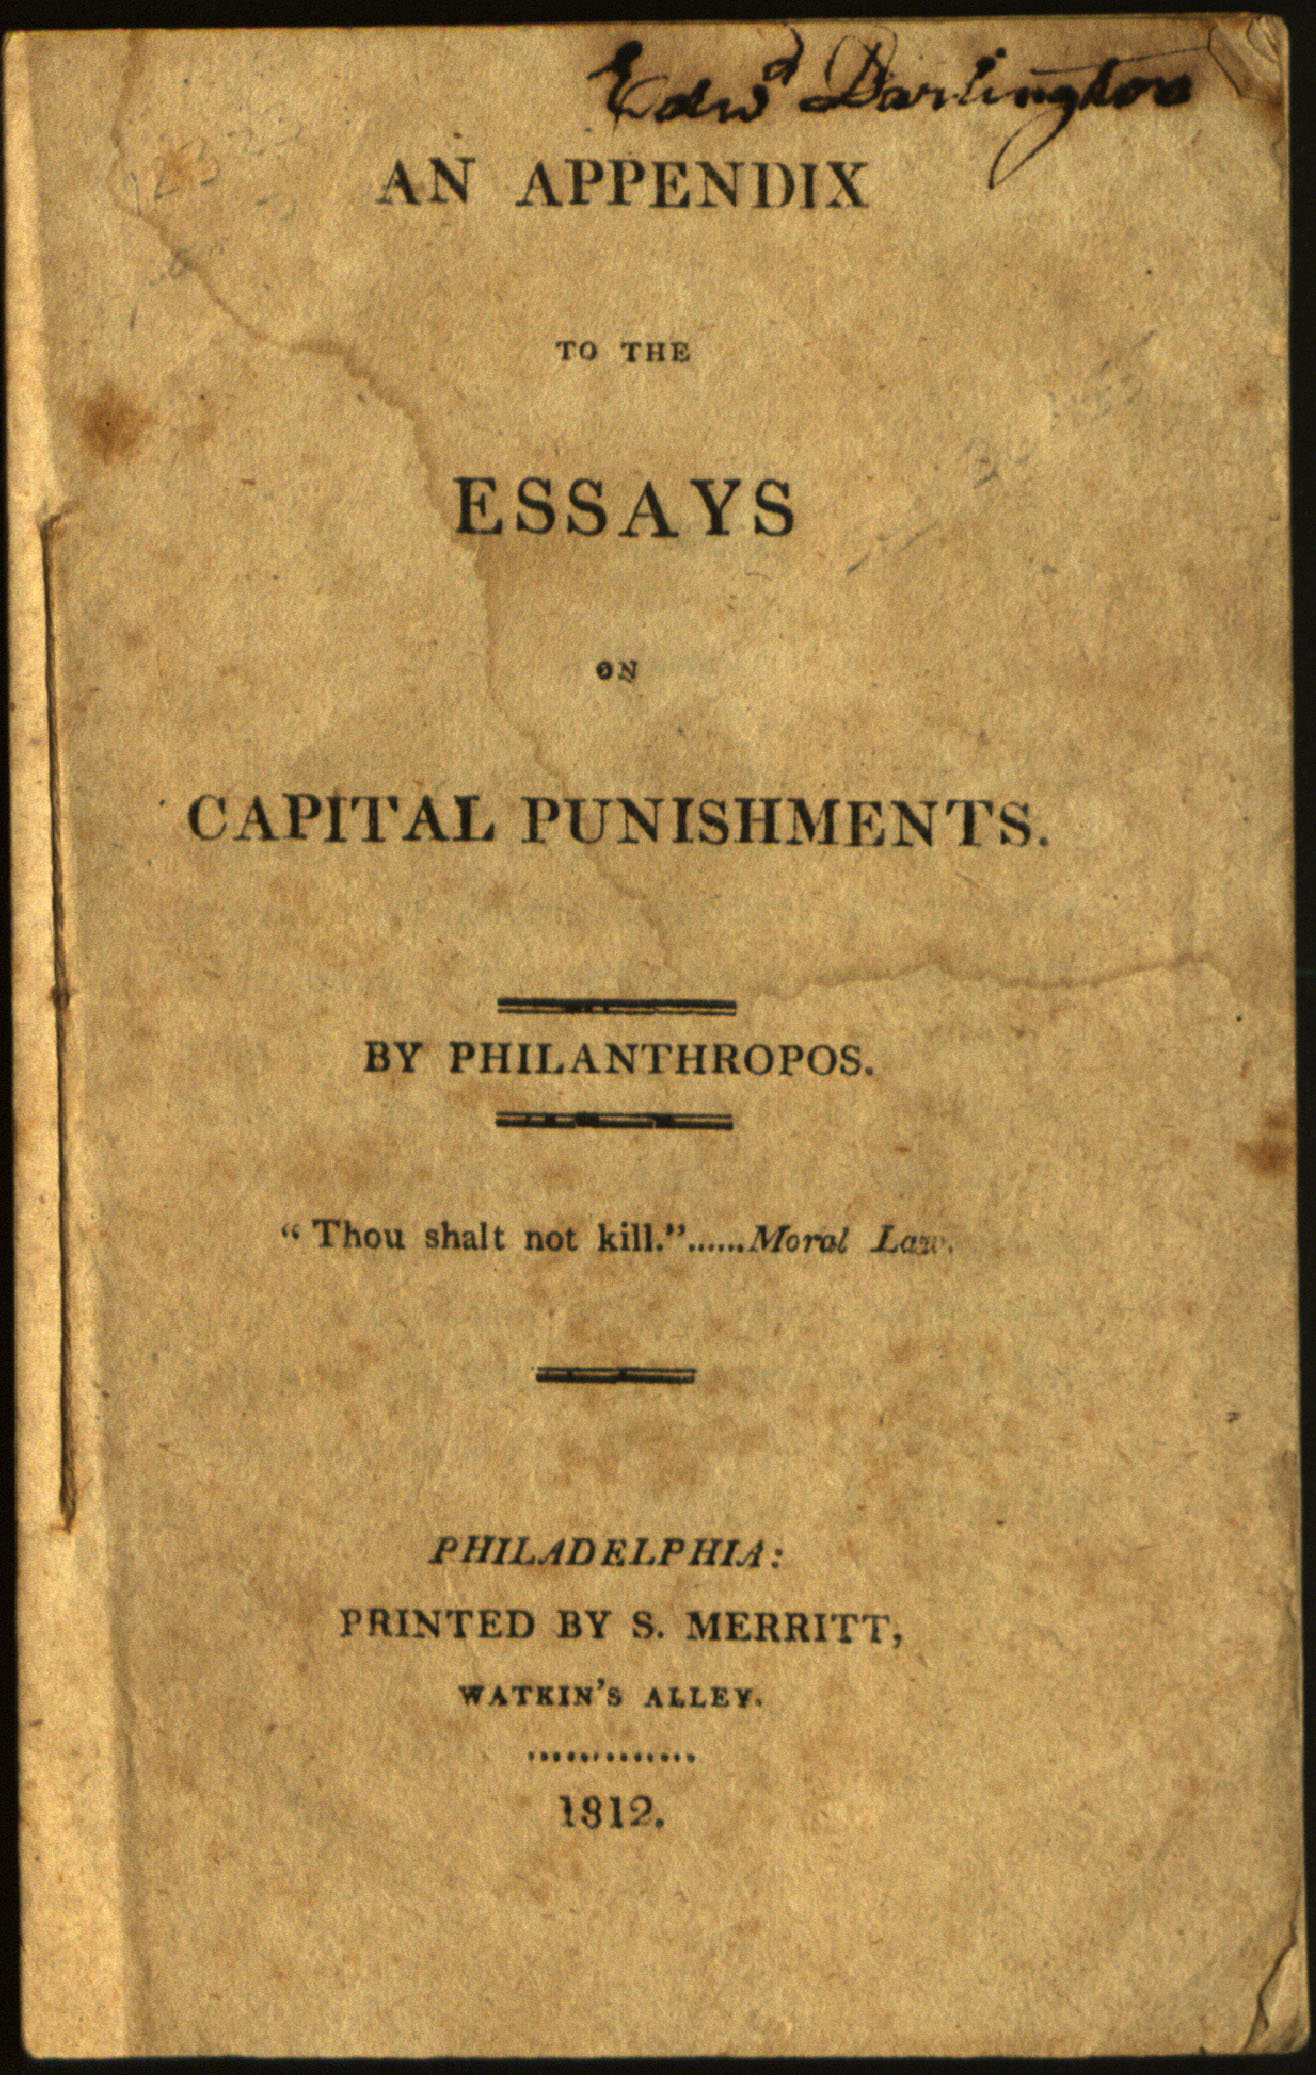 capital punishment pros and cons essays capital punishment pros and cons essays write my